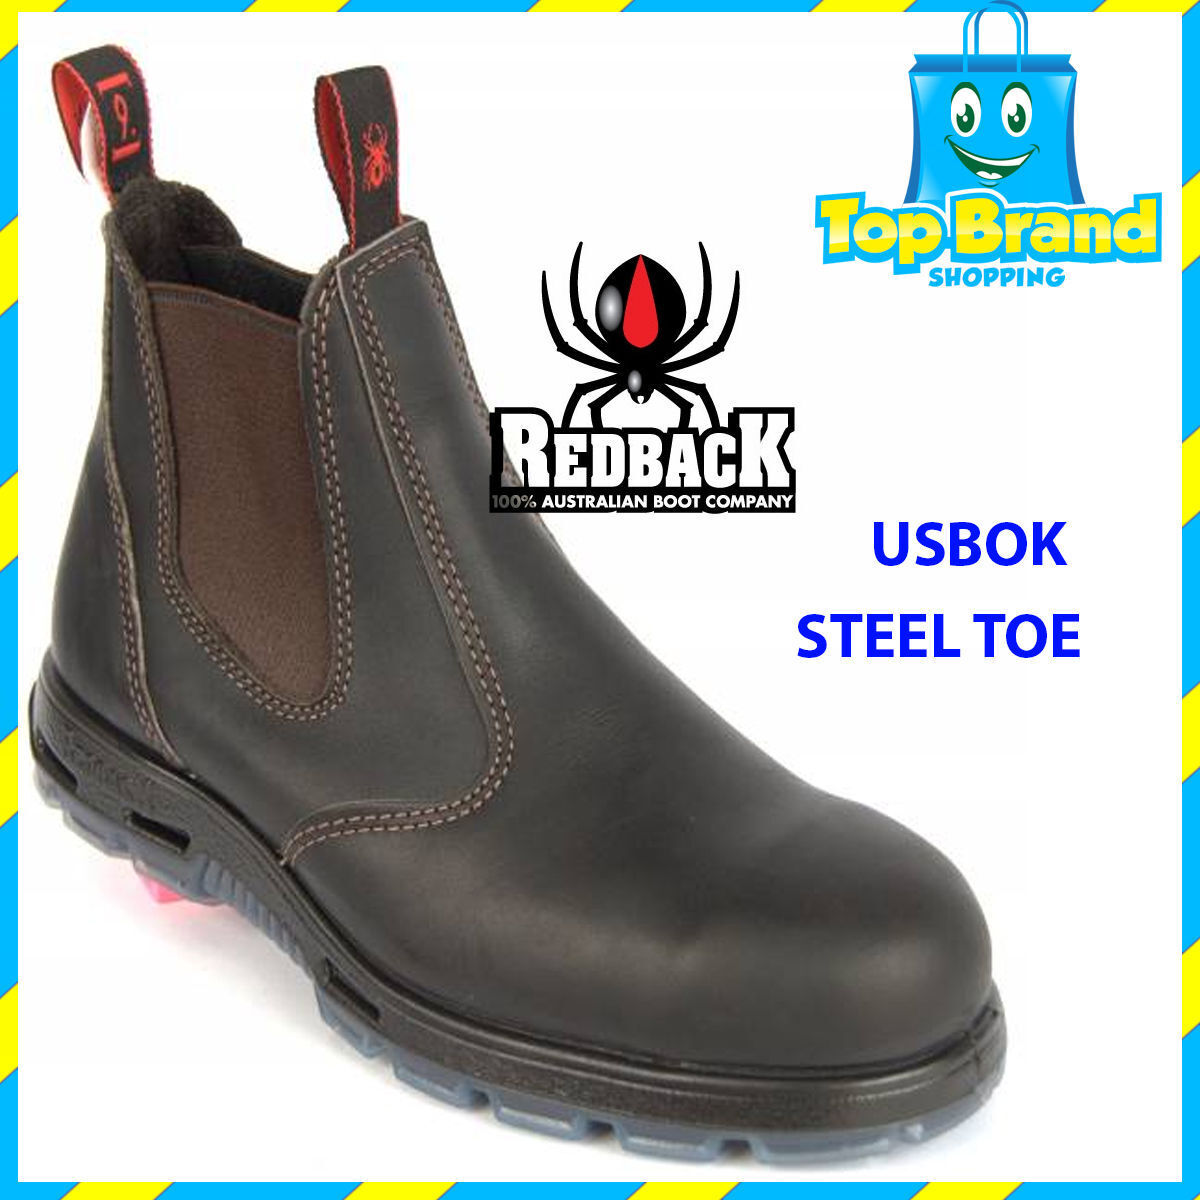 REDBACK Work Boots USBOK BROWN BOBCAT Claret OIL Slip On Steel Toe ...